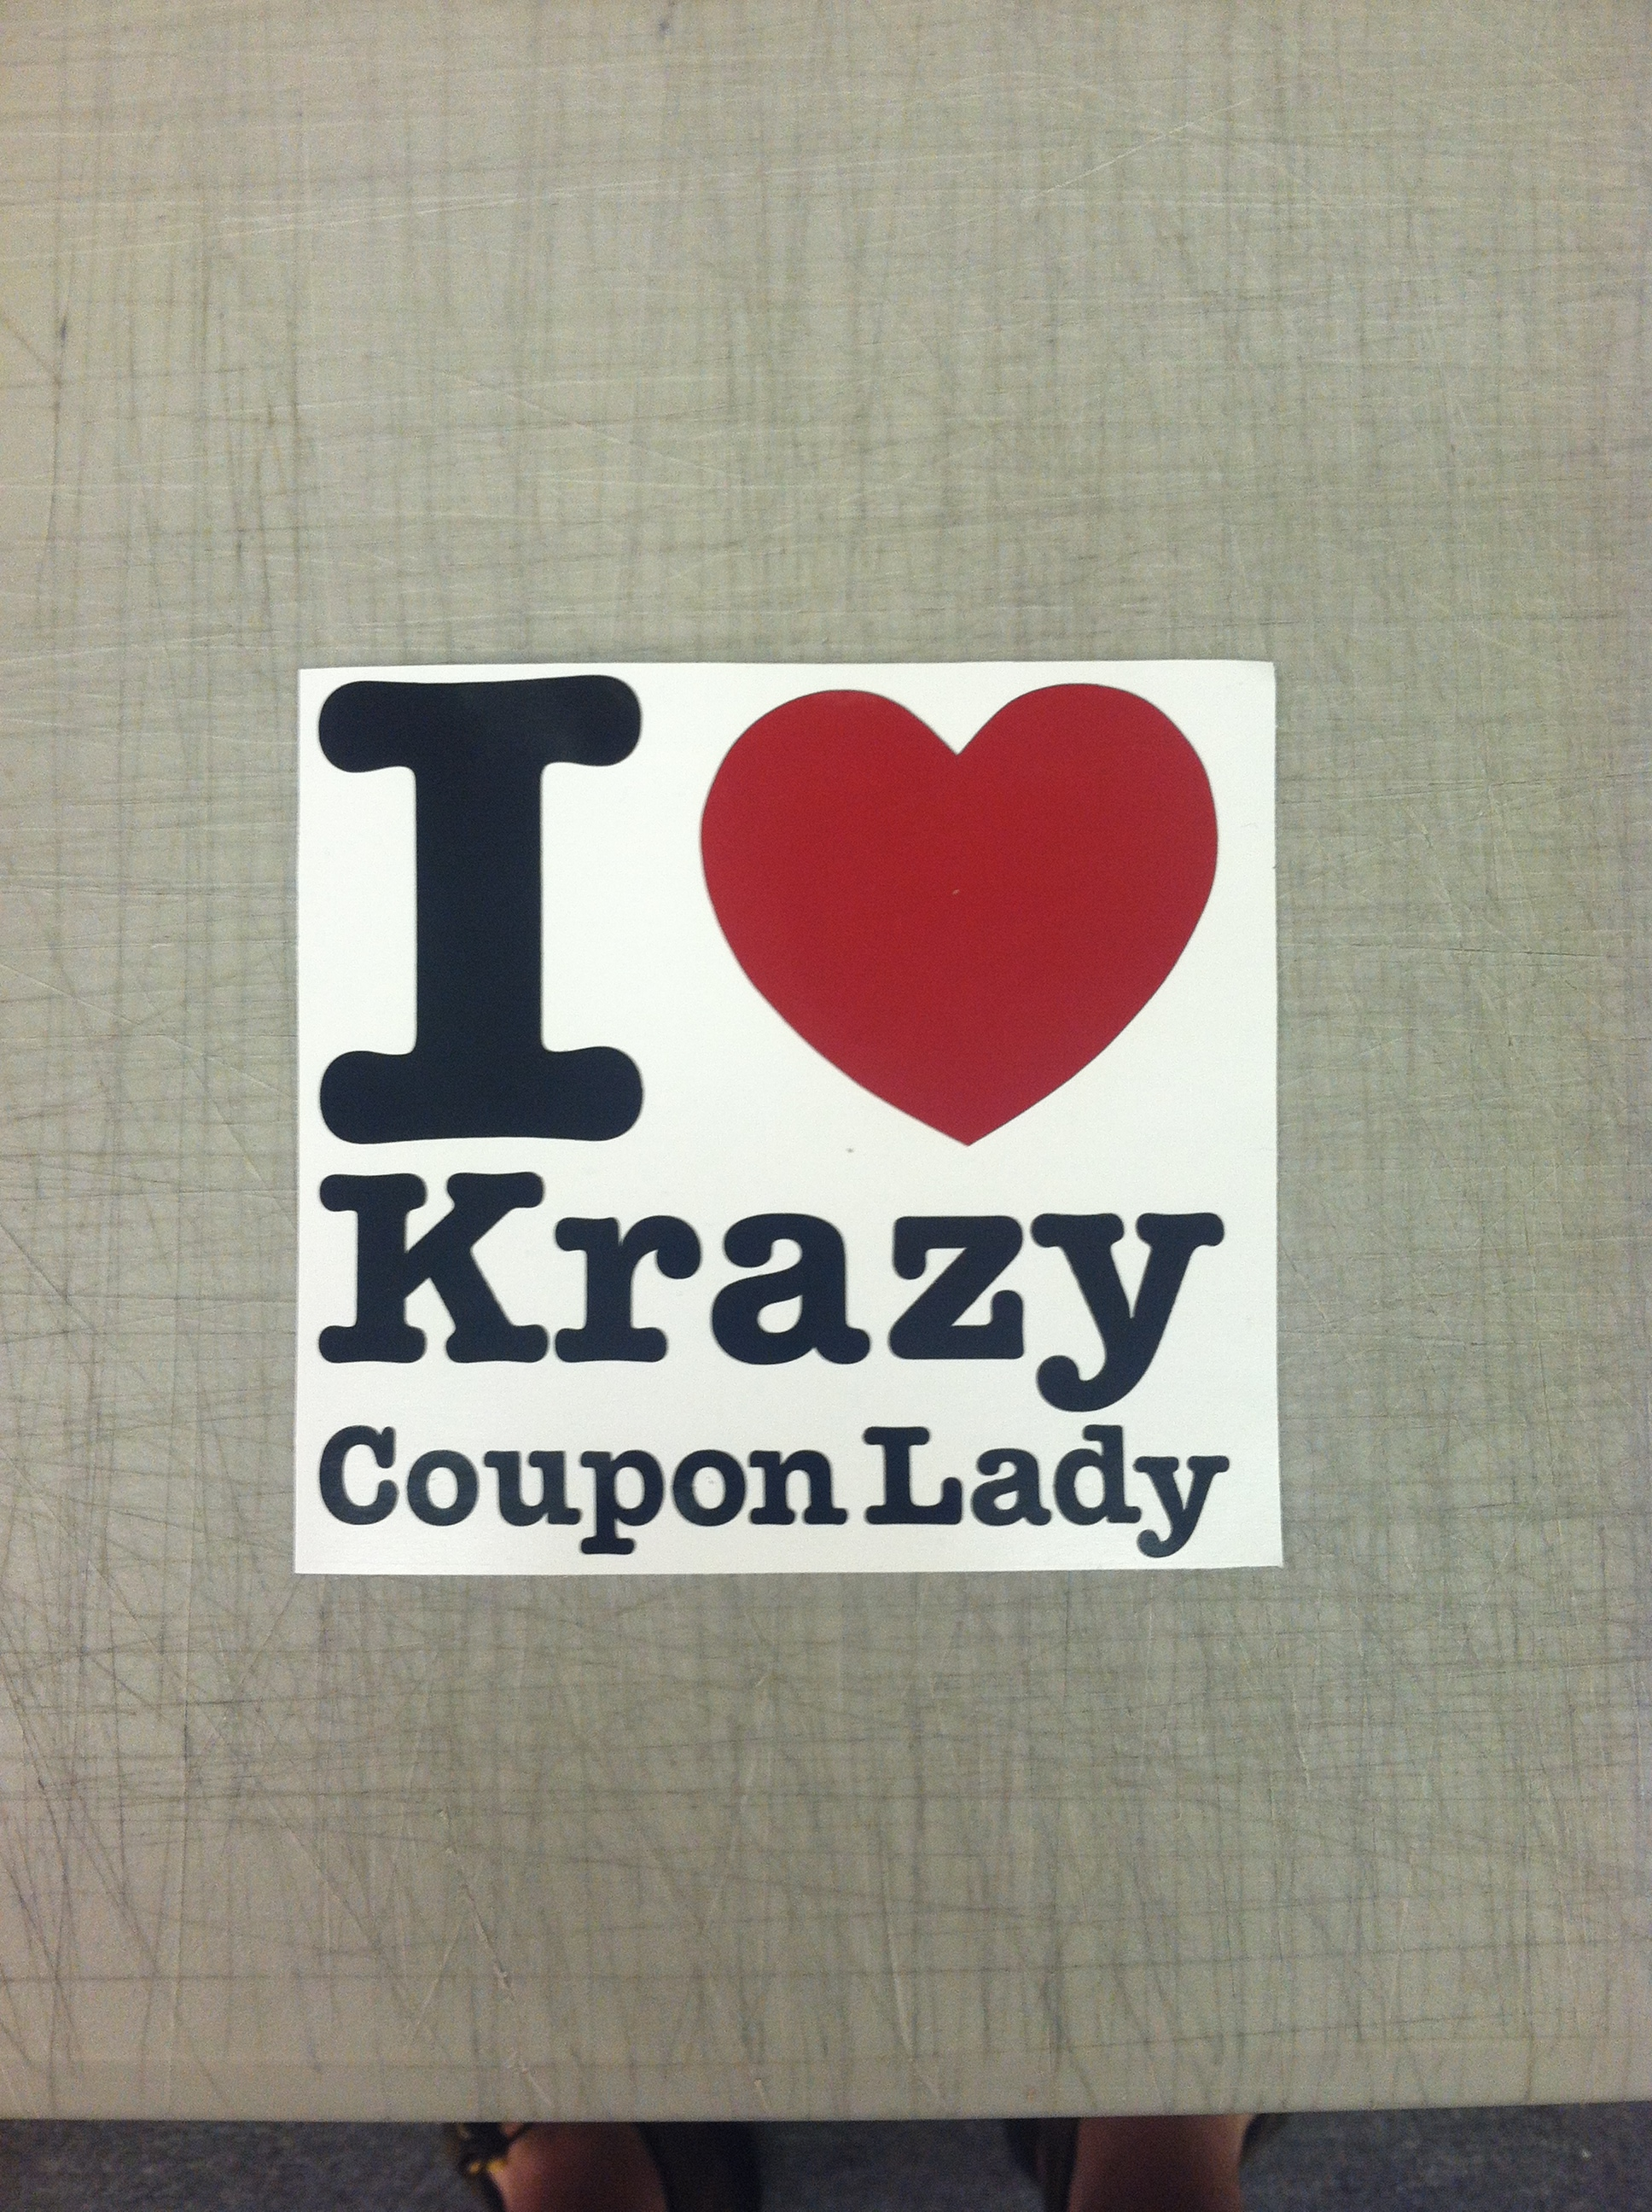 (1) I love Krazy coupon lady sticker